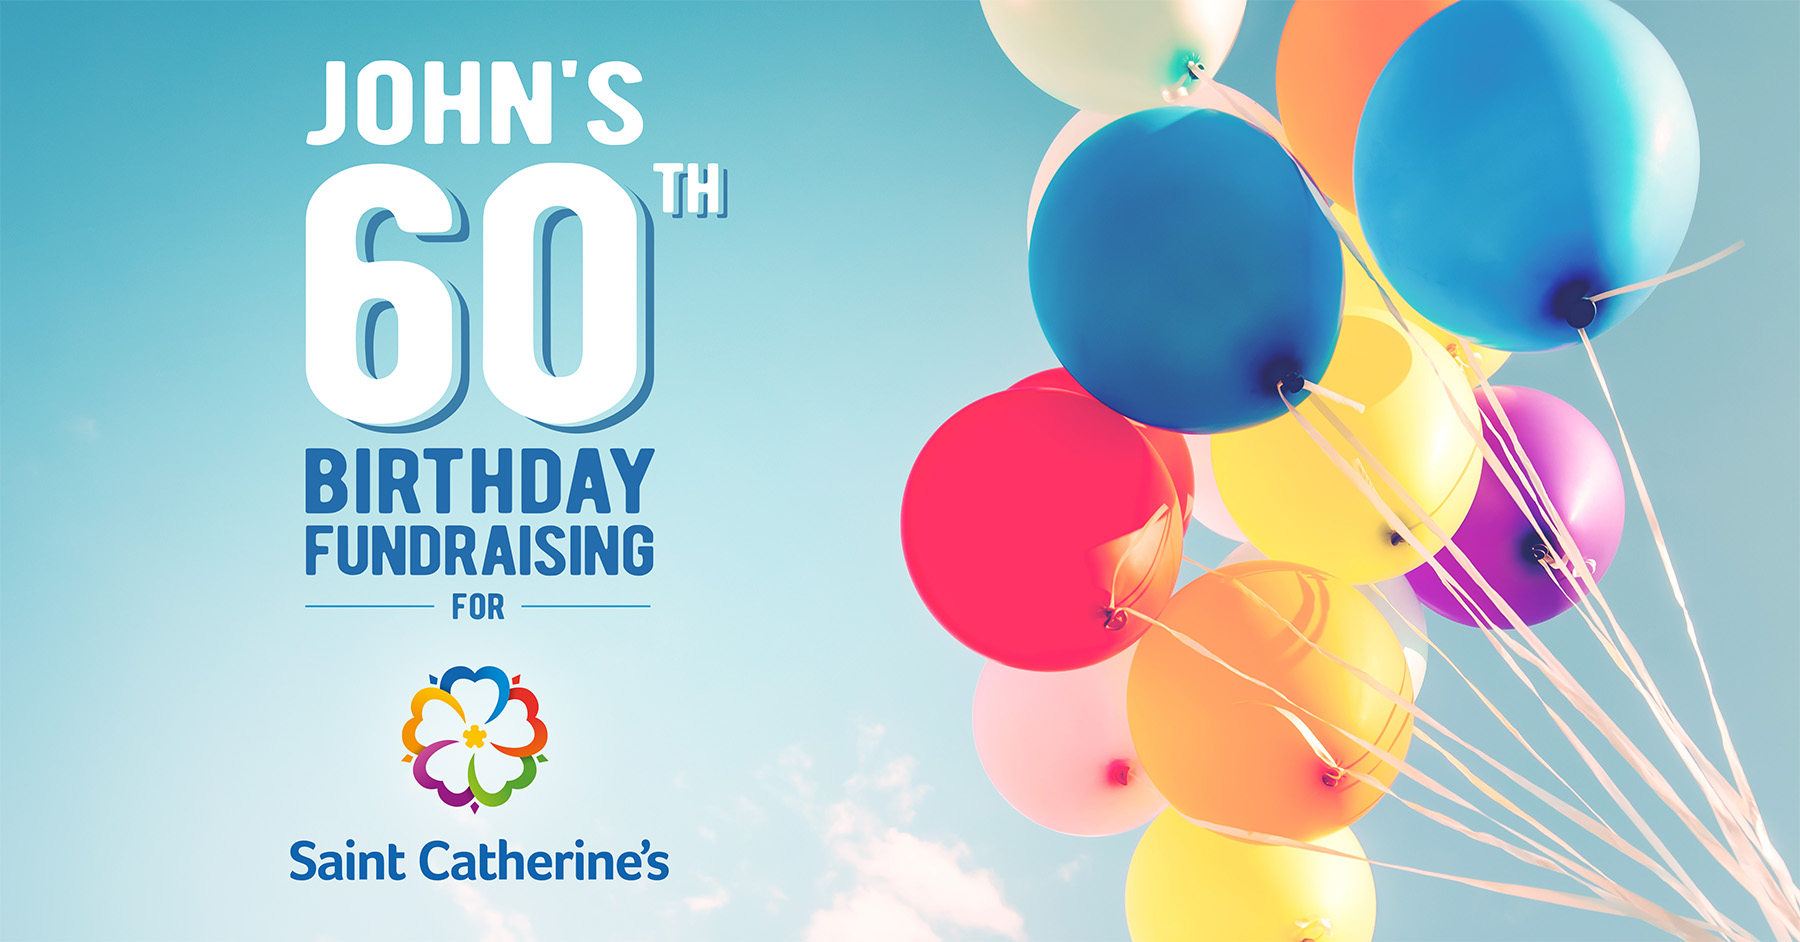 John's 60th Birthday Fundraising for Saint Catherine's